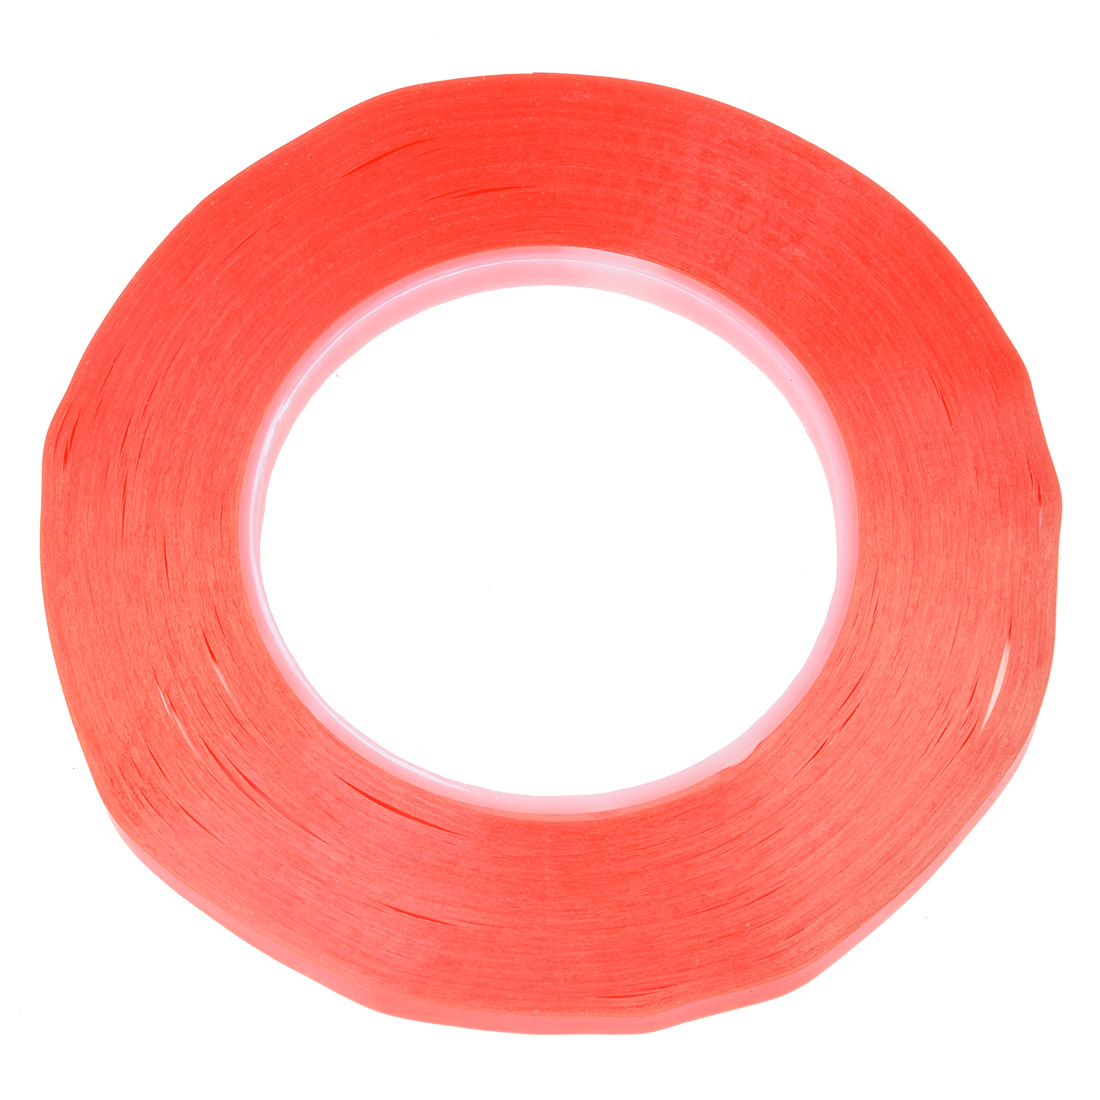 Strong Super Slim 5-20mm Double Side Clear Tape Heat Resistant Double-side Transparent Adhesive Acrylic Tape 50M Multi-role все цены